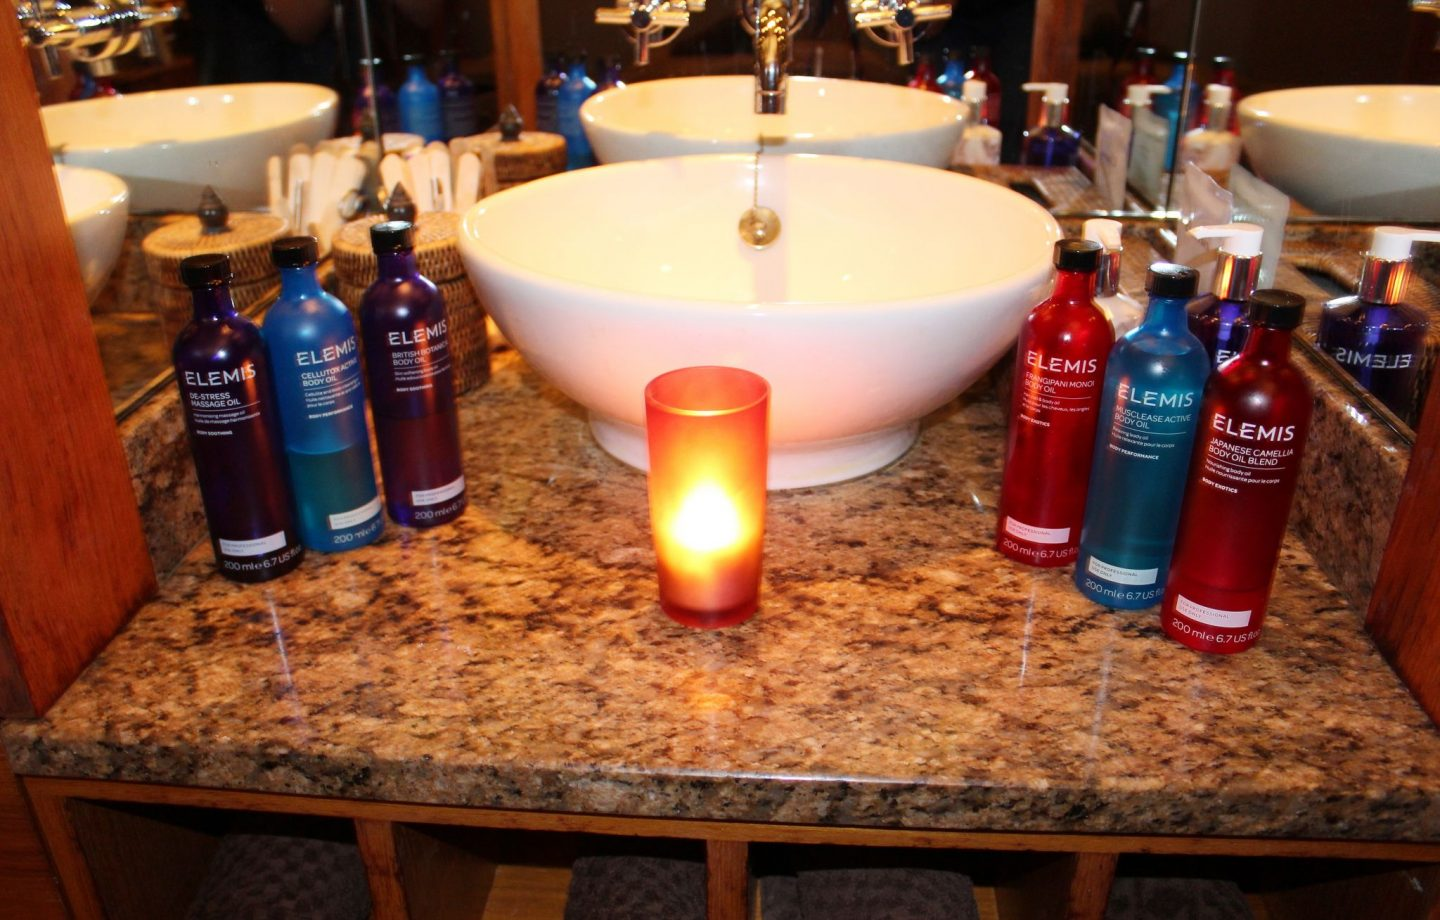 Elemis Massage Treatment Oils, The Chester Grosvenor Spa - Miel and Mint review